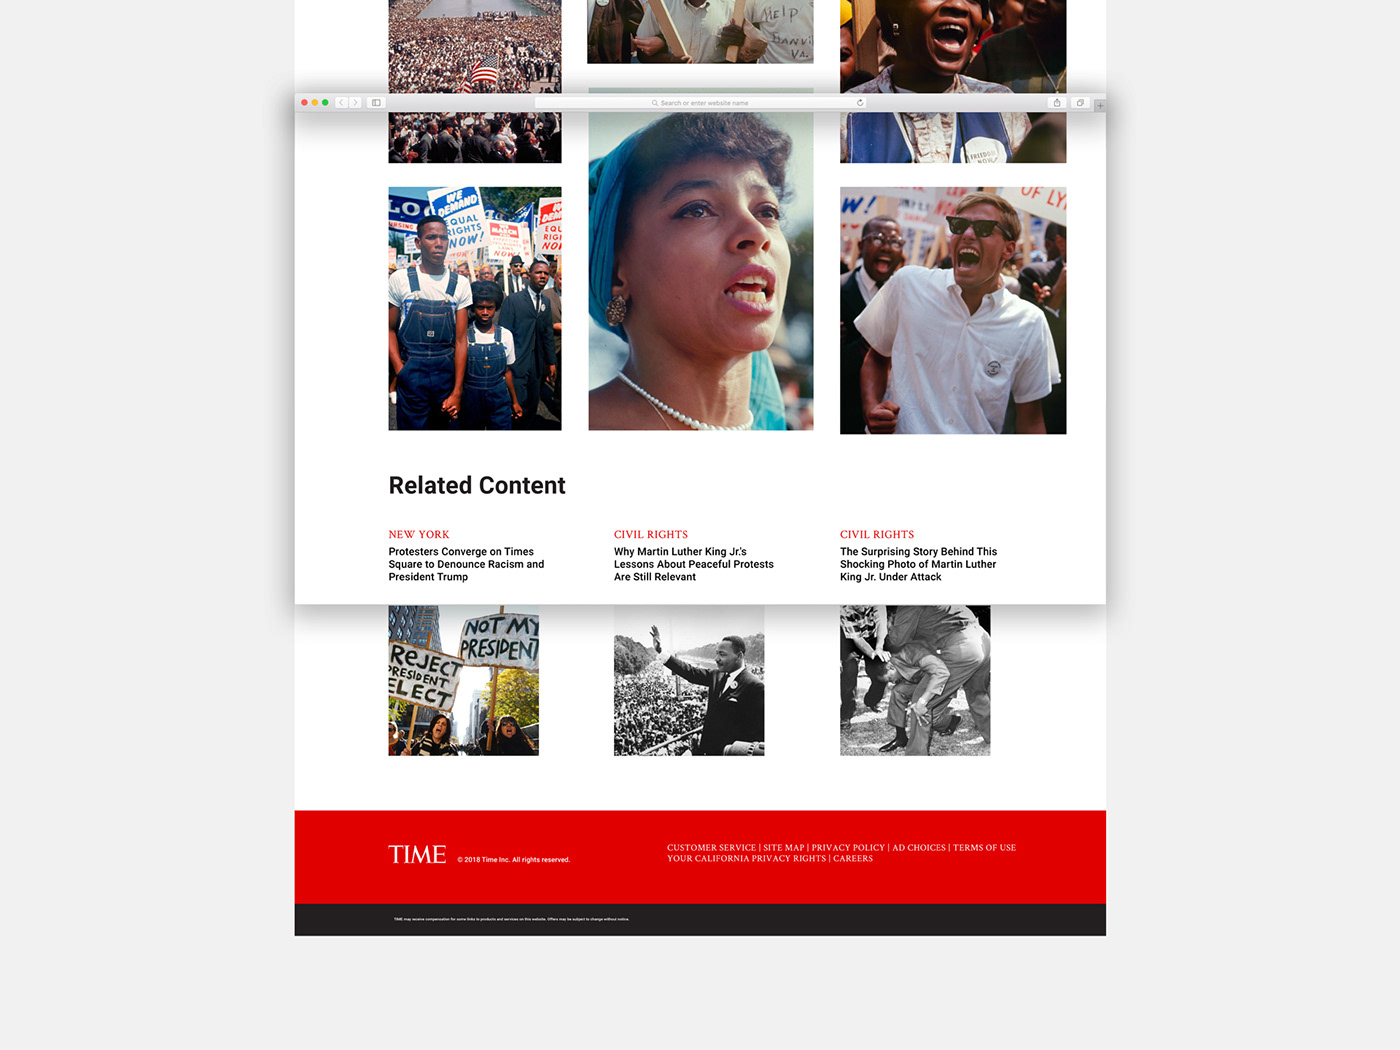 Email newsletter email newsletter time Time Magazine article news article Article Design photo newsletter